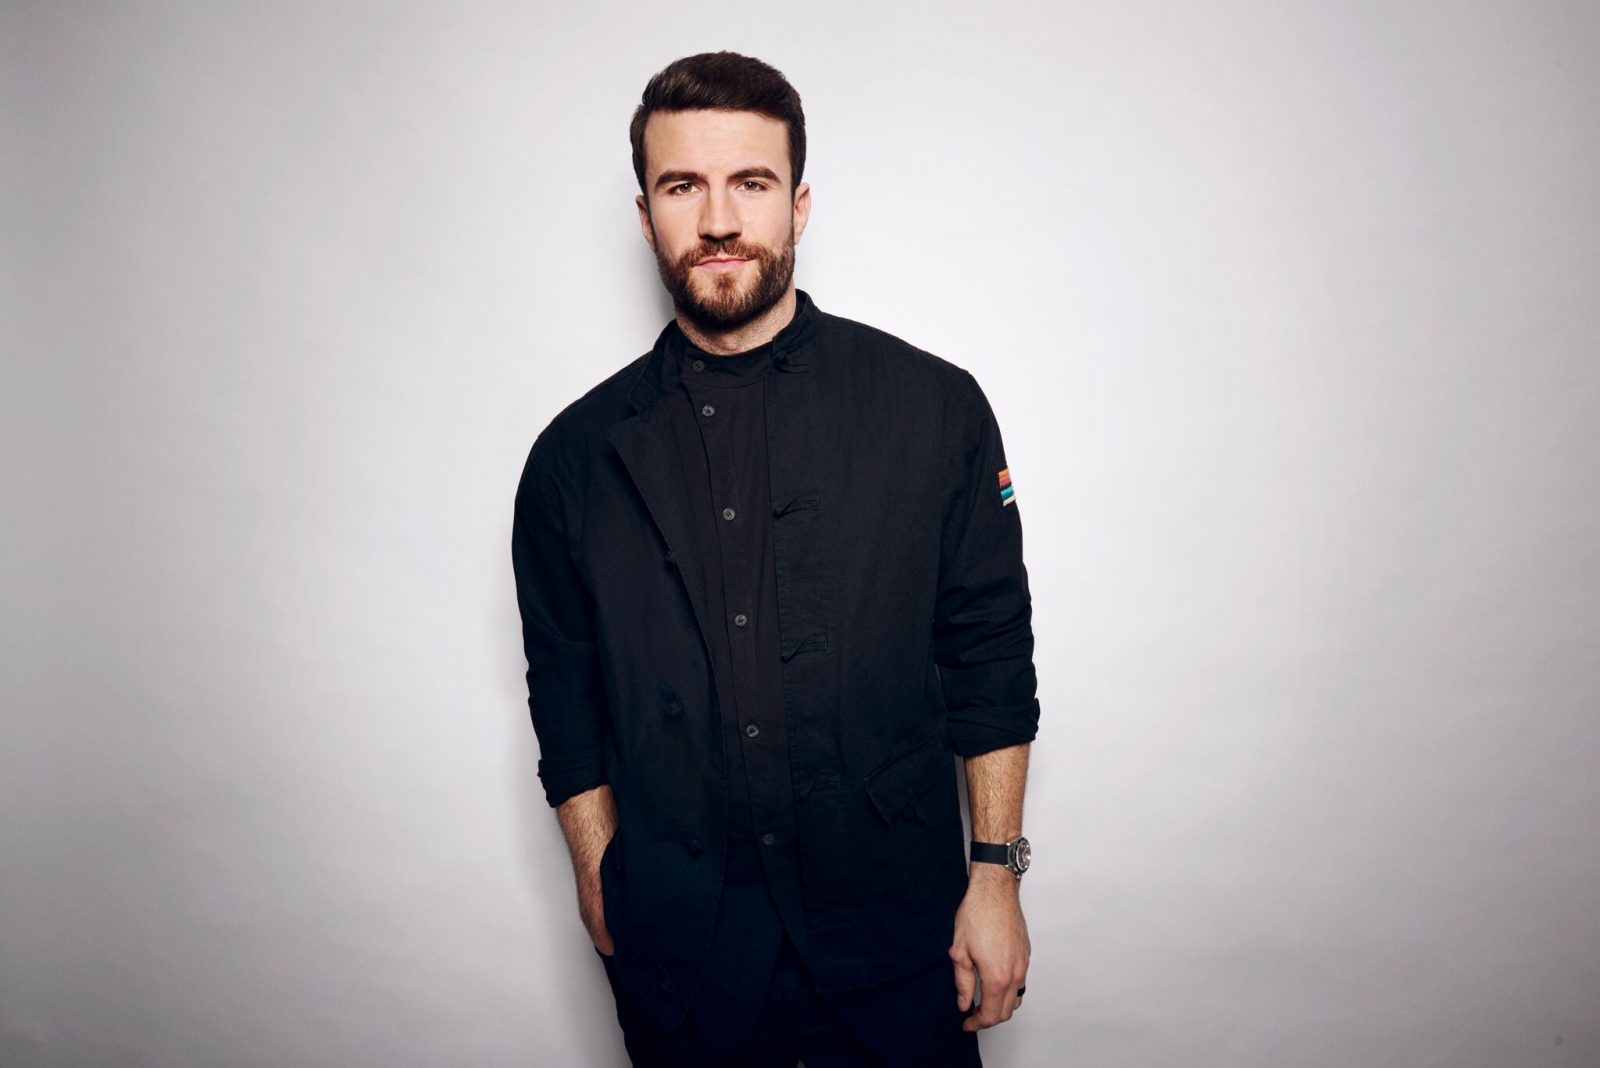 Sam Hunt Gets His Day in Court Today